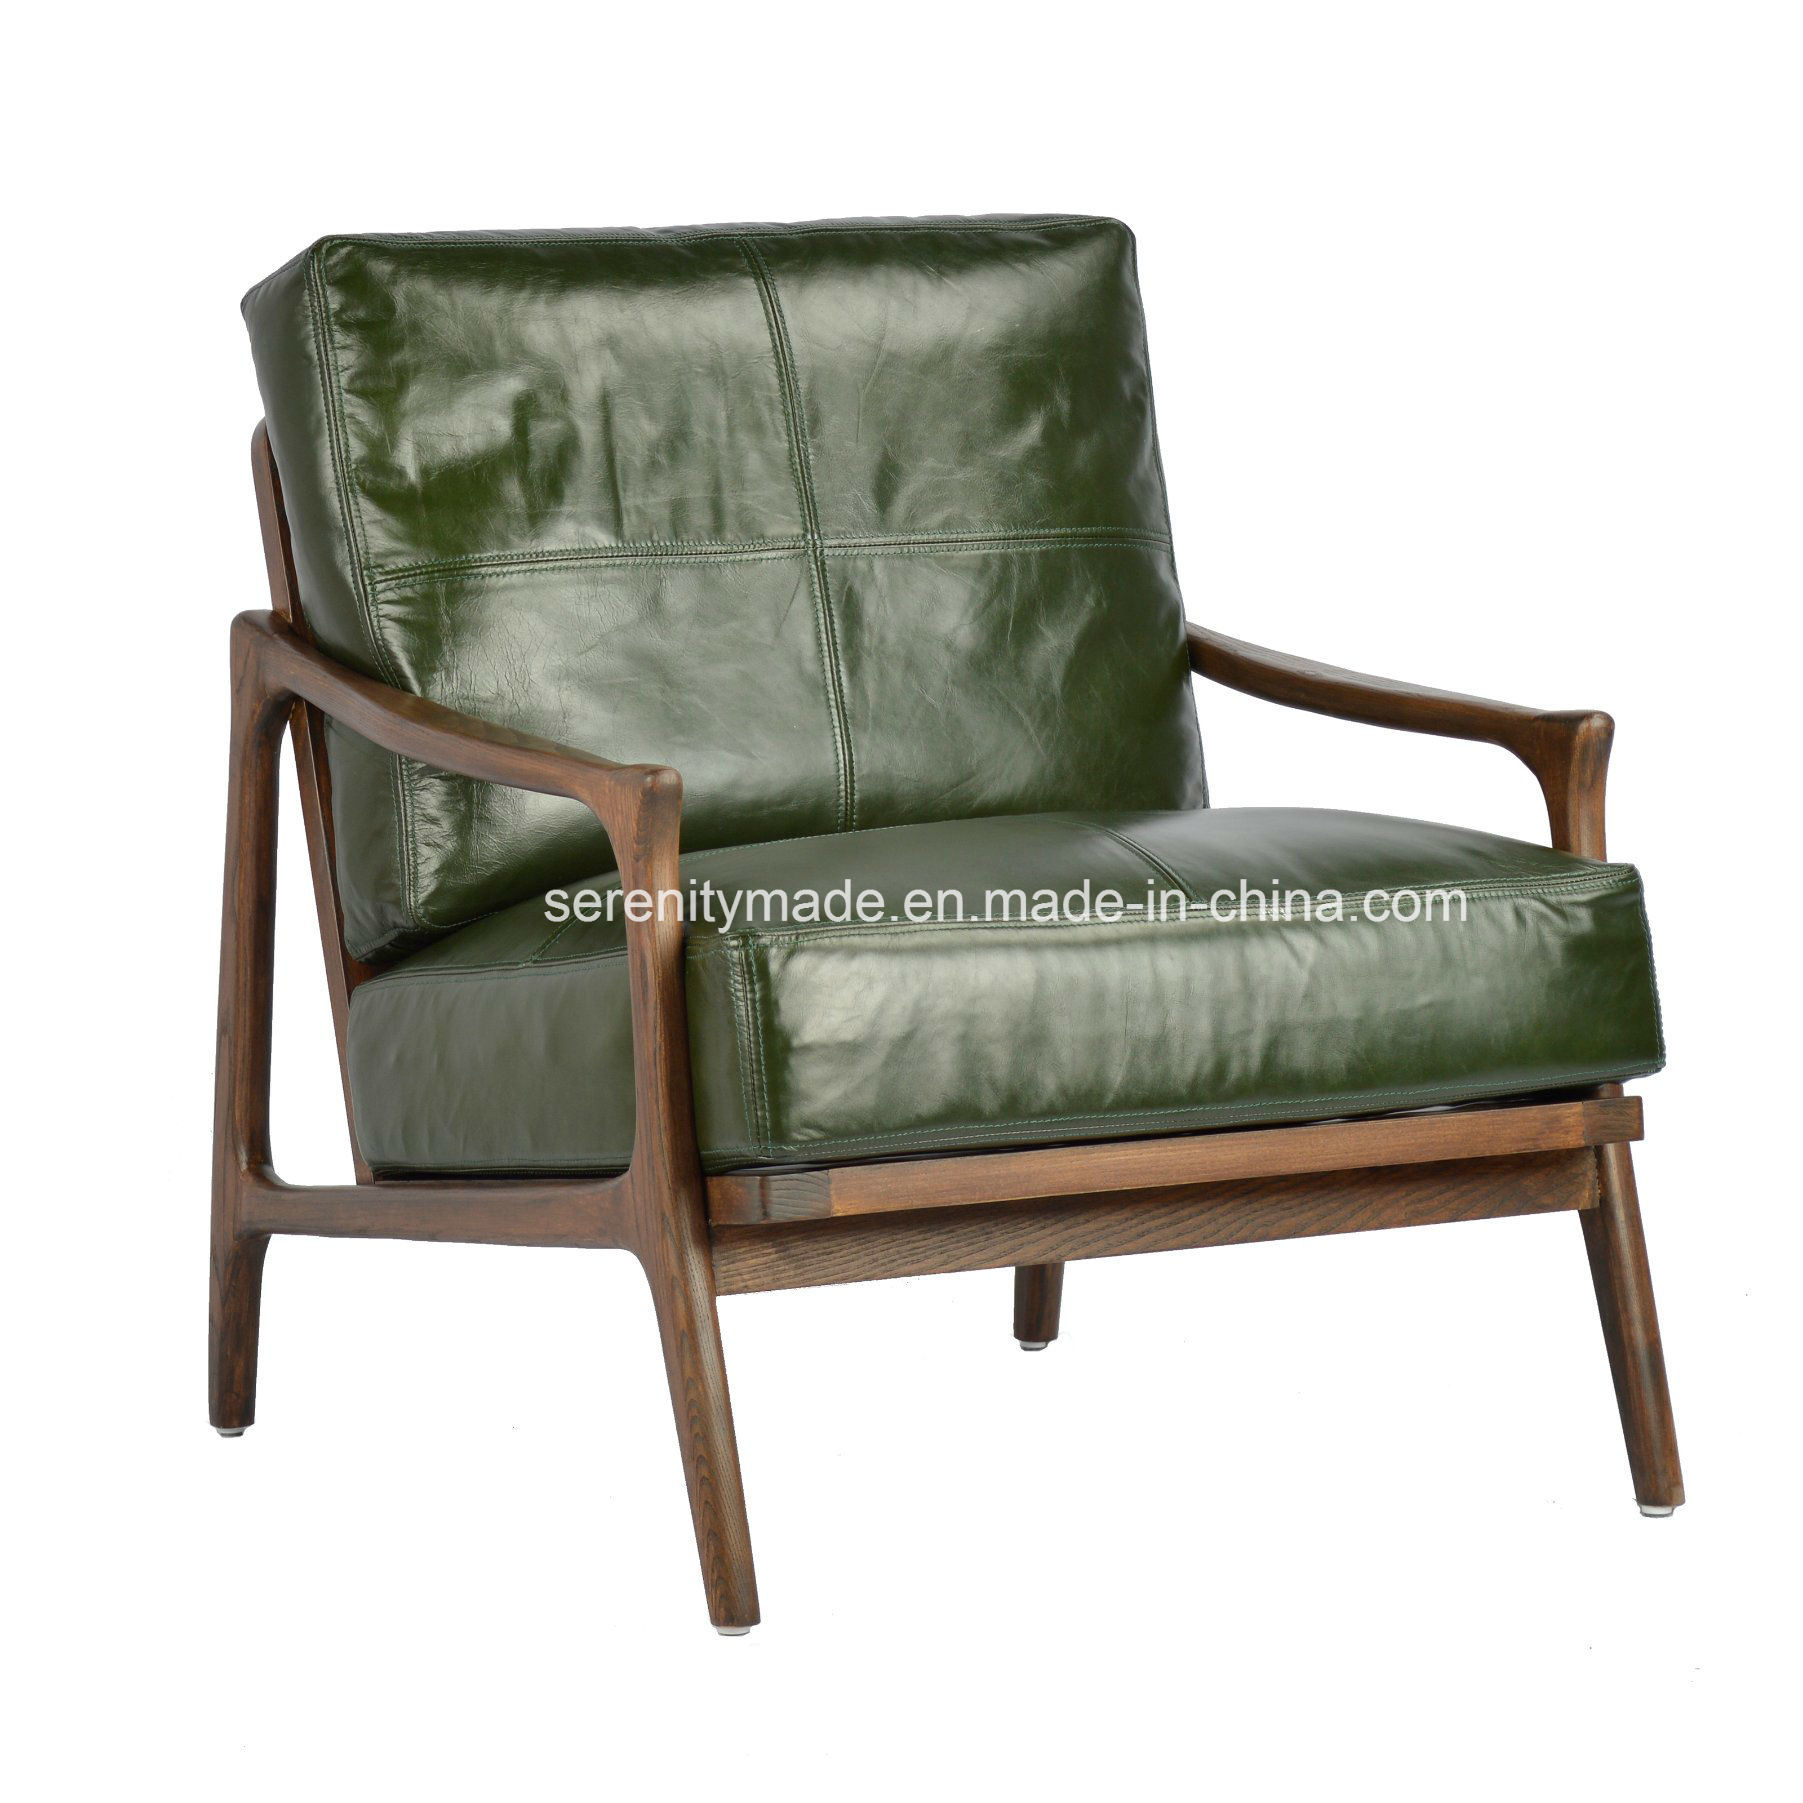 Leather And Wood Chair Hot Item Vintage Style Restaurant Furniture Solid Wood Leather Dining Chair